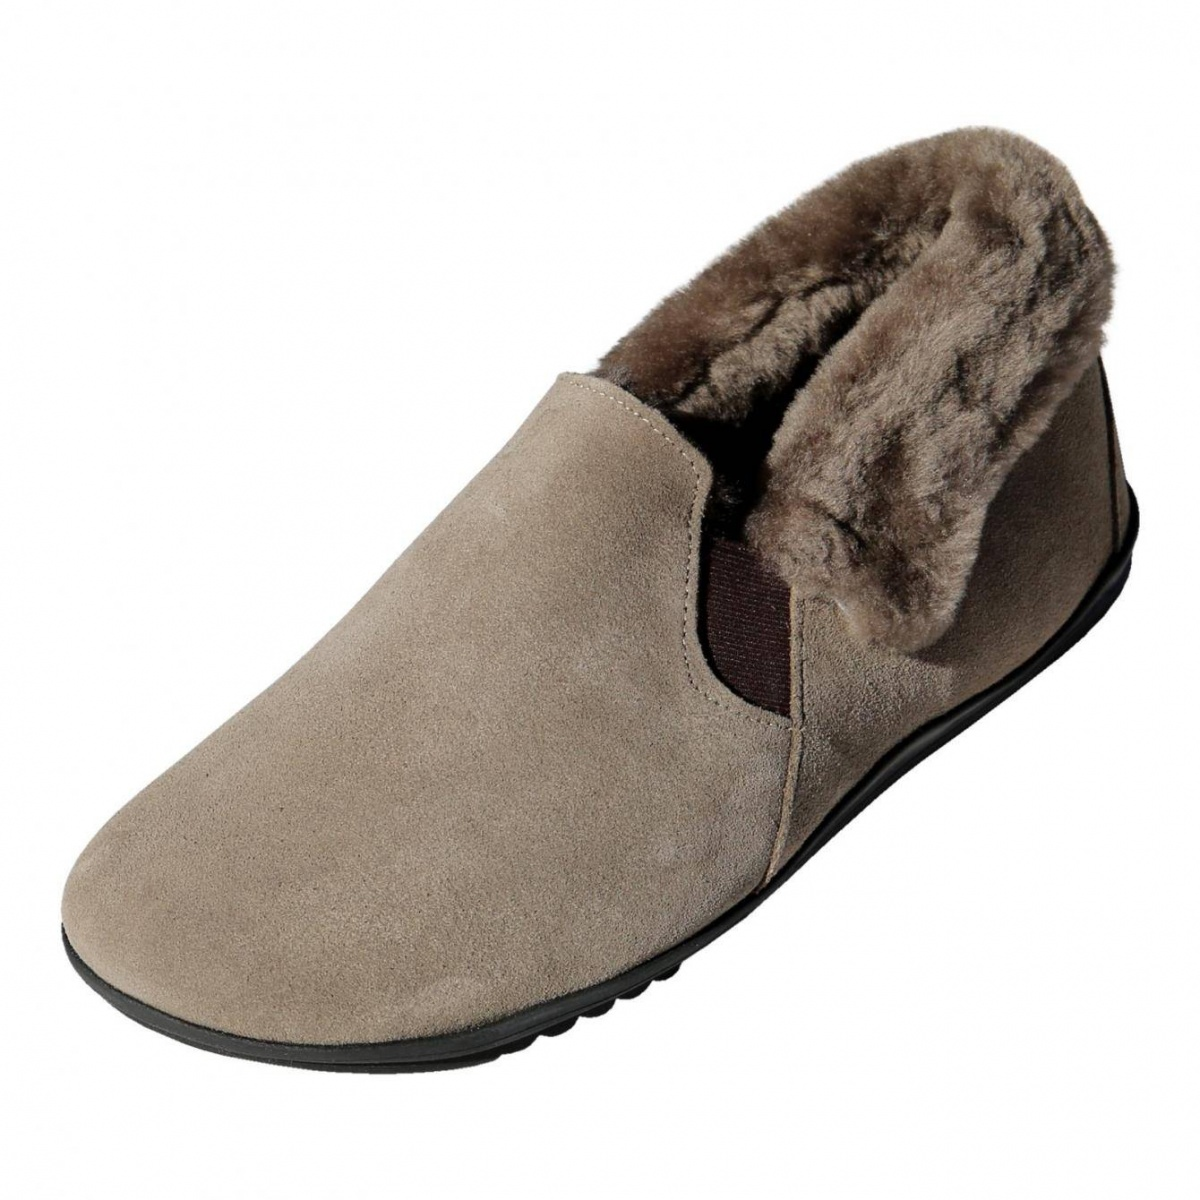 fa2252111f1 Details about Lamb Wool House Shoes - Biekamp Pepper Ladies Shoes Merino fur  Real Leather